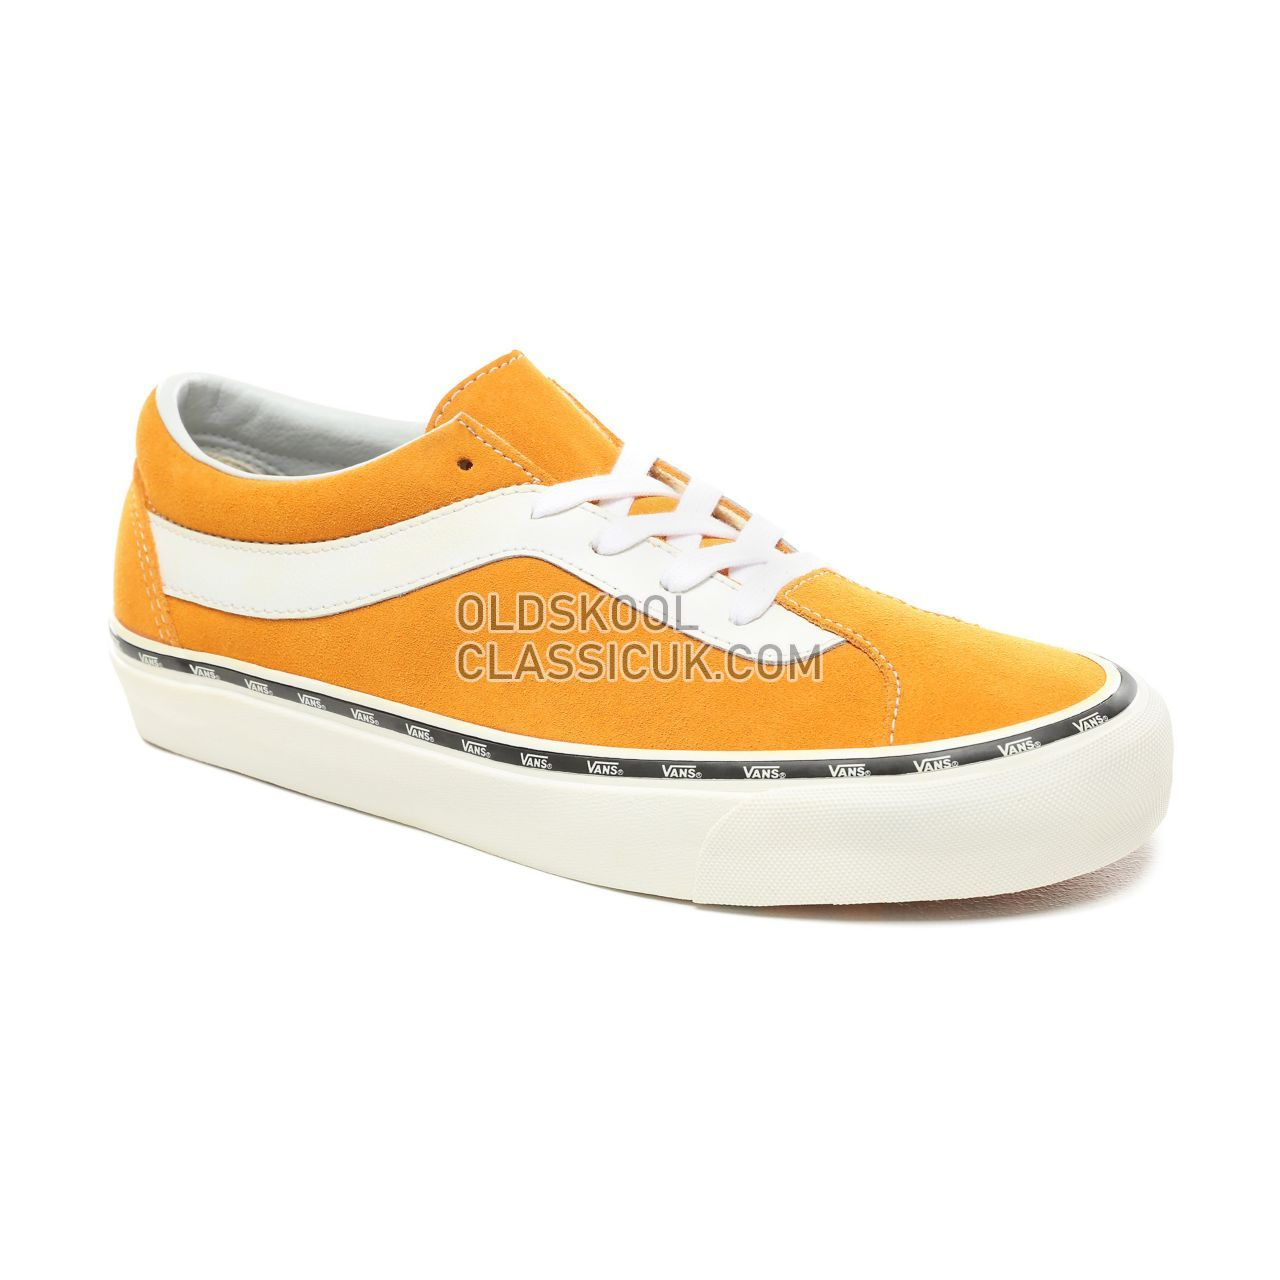 Vans New Issue Bold Ni Sneakers Mens (New Issue) Zinna/True White VN0A3WLPVLH Shoes